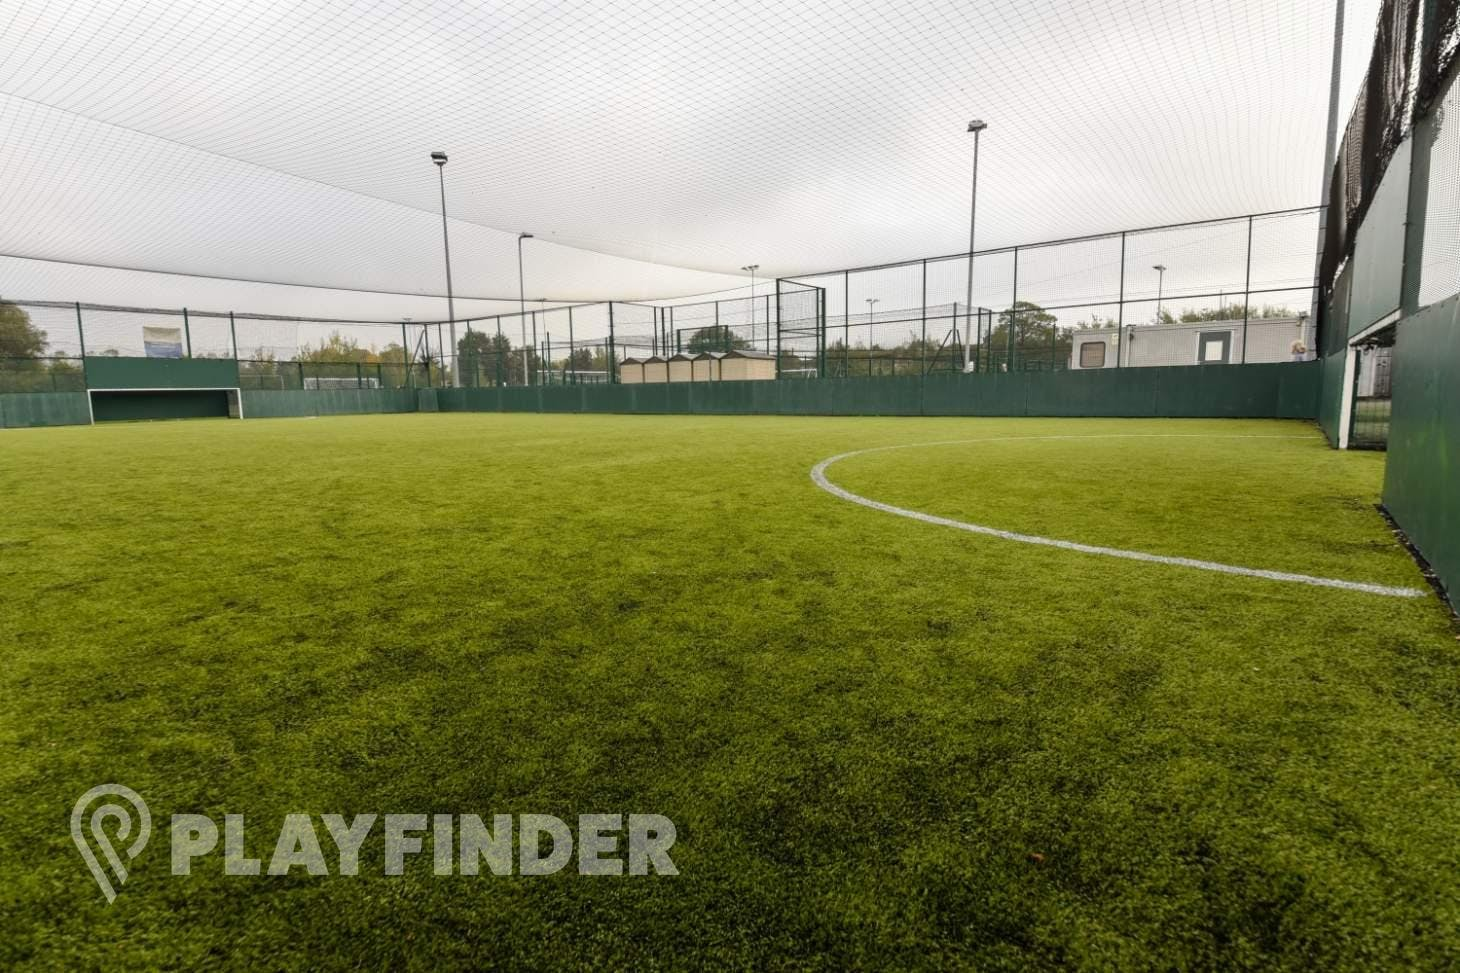 Match Day Centres 5 a side | 3G Astroturf football pitch